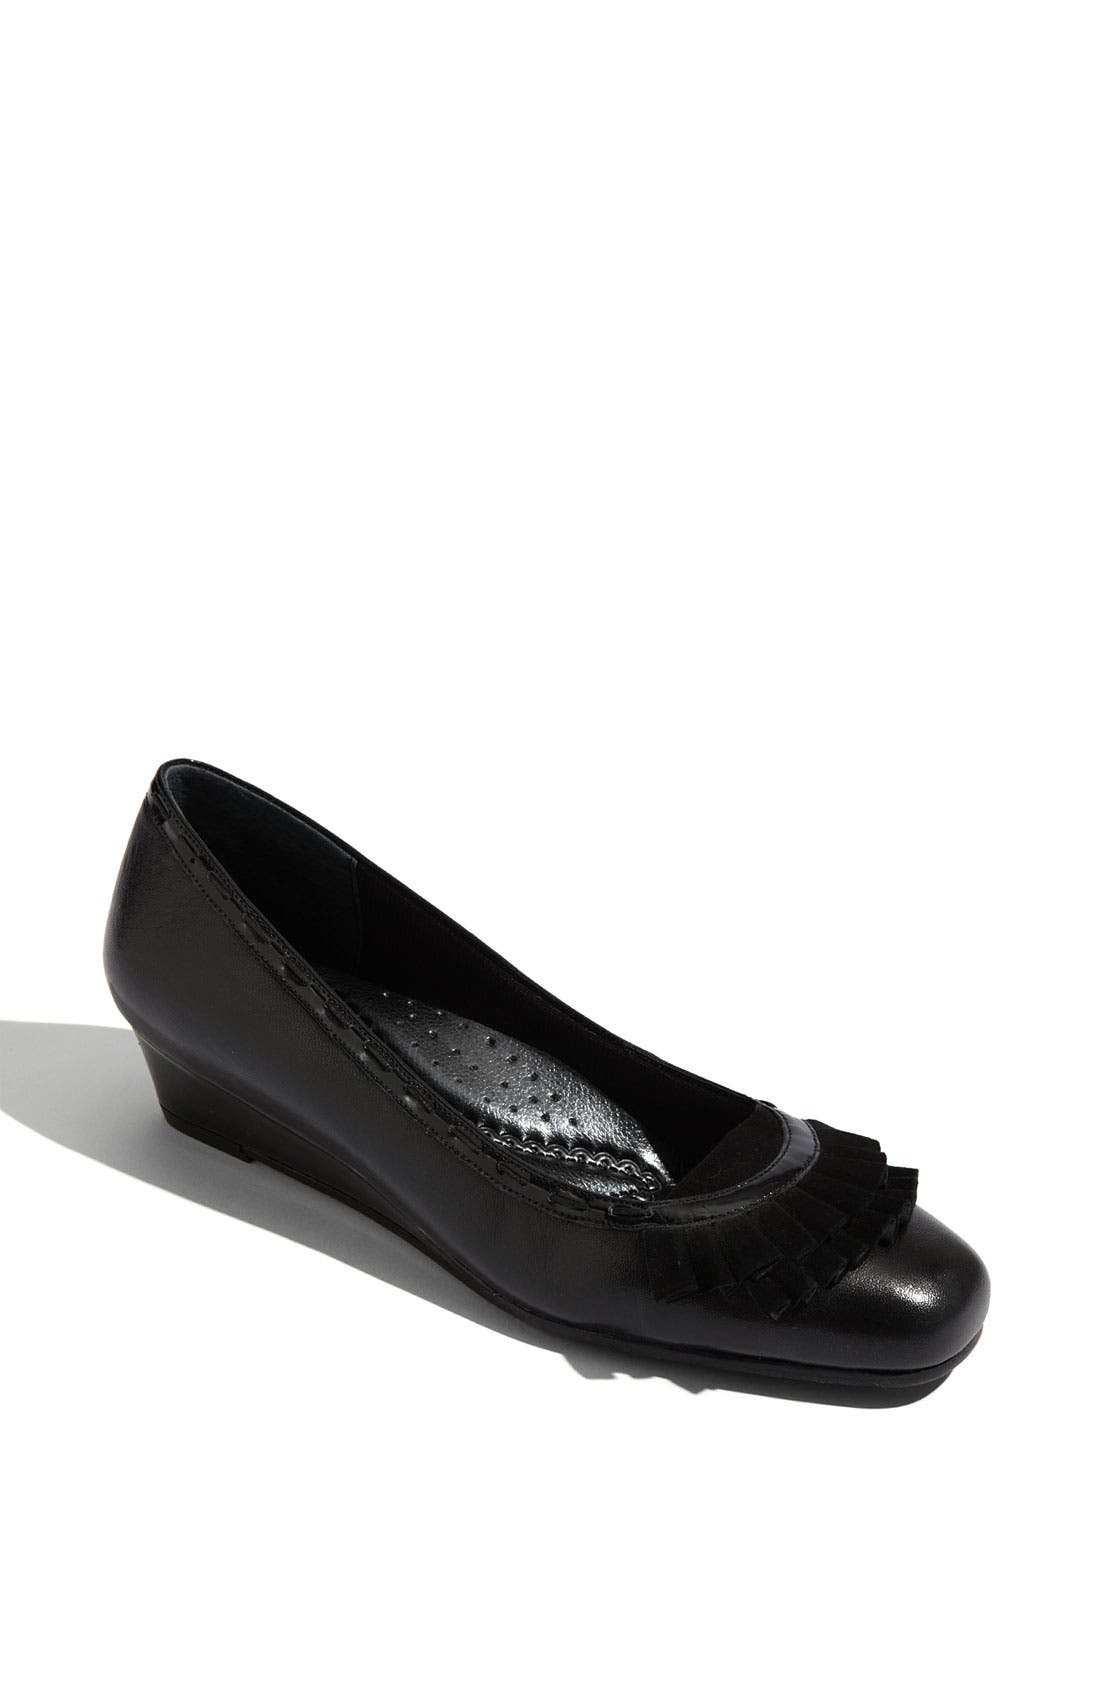 Alternate Image 1 Selected - Trotters 'Dreama' Wedge